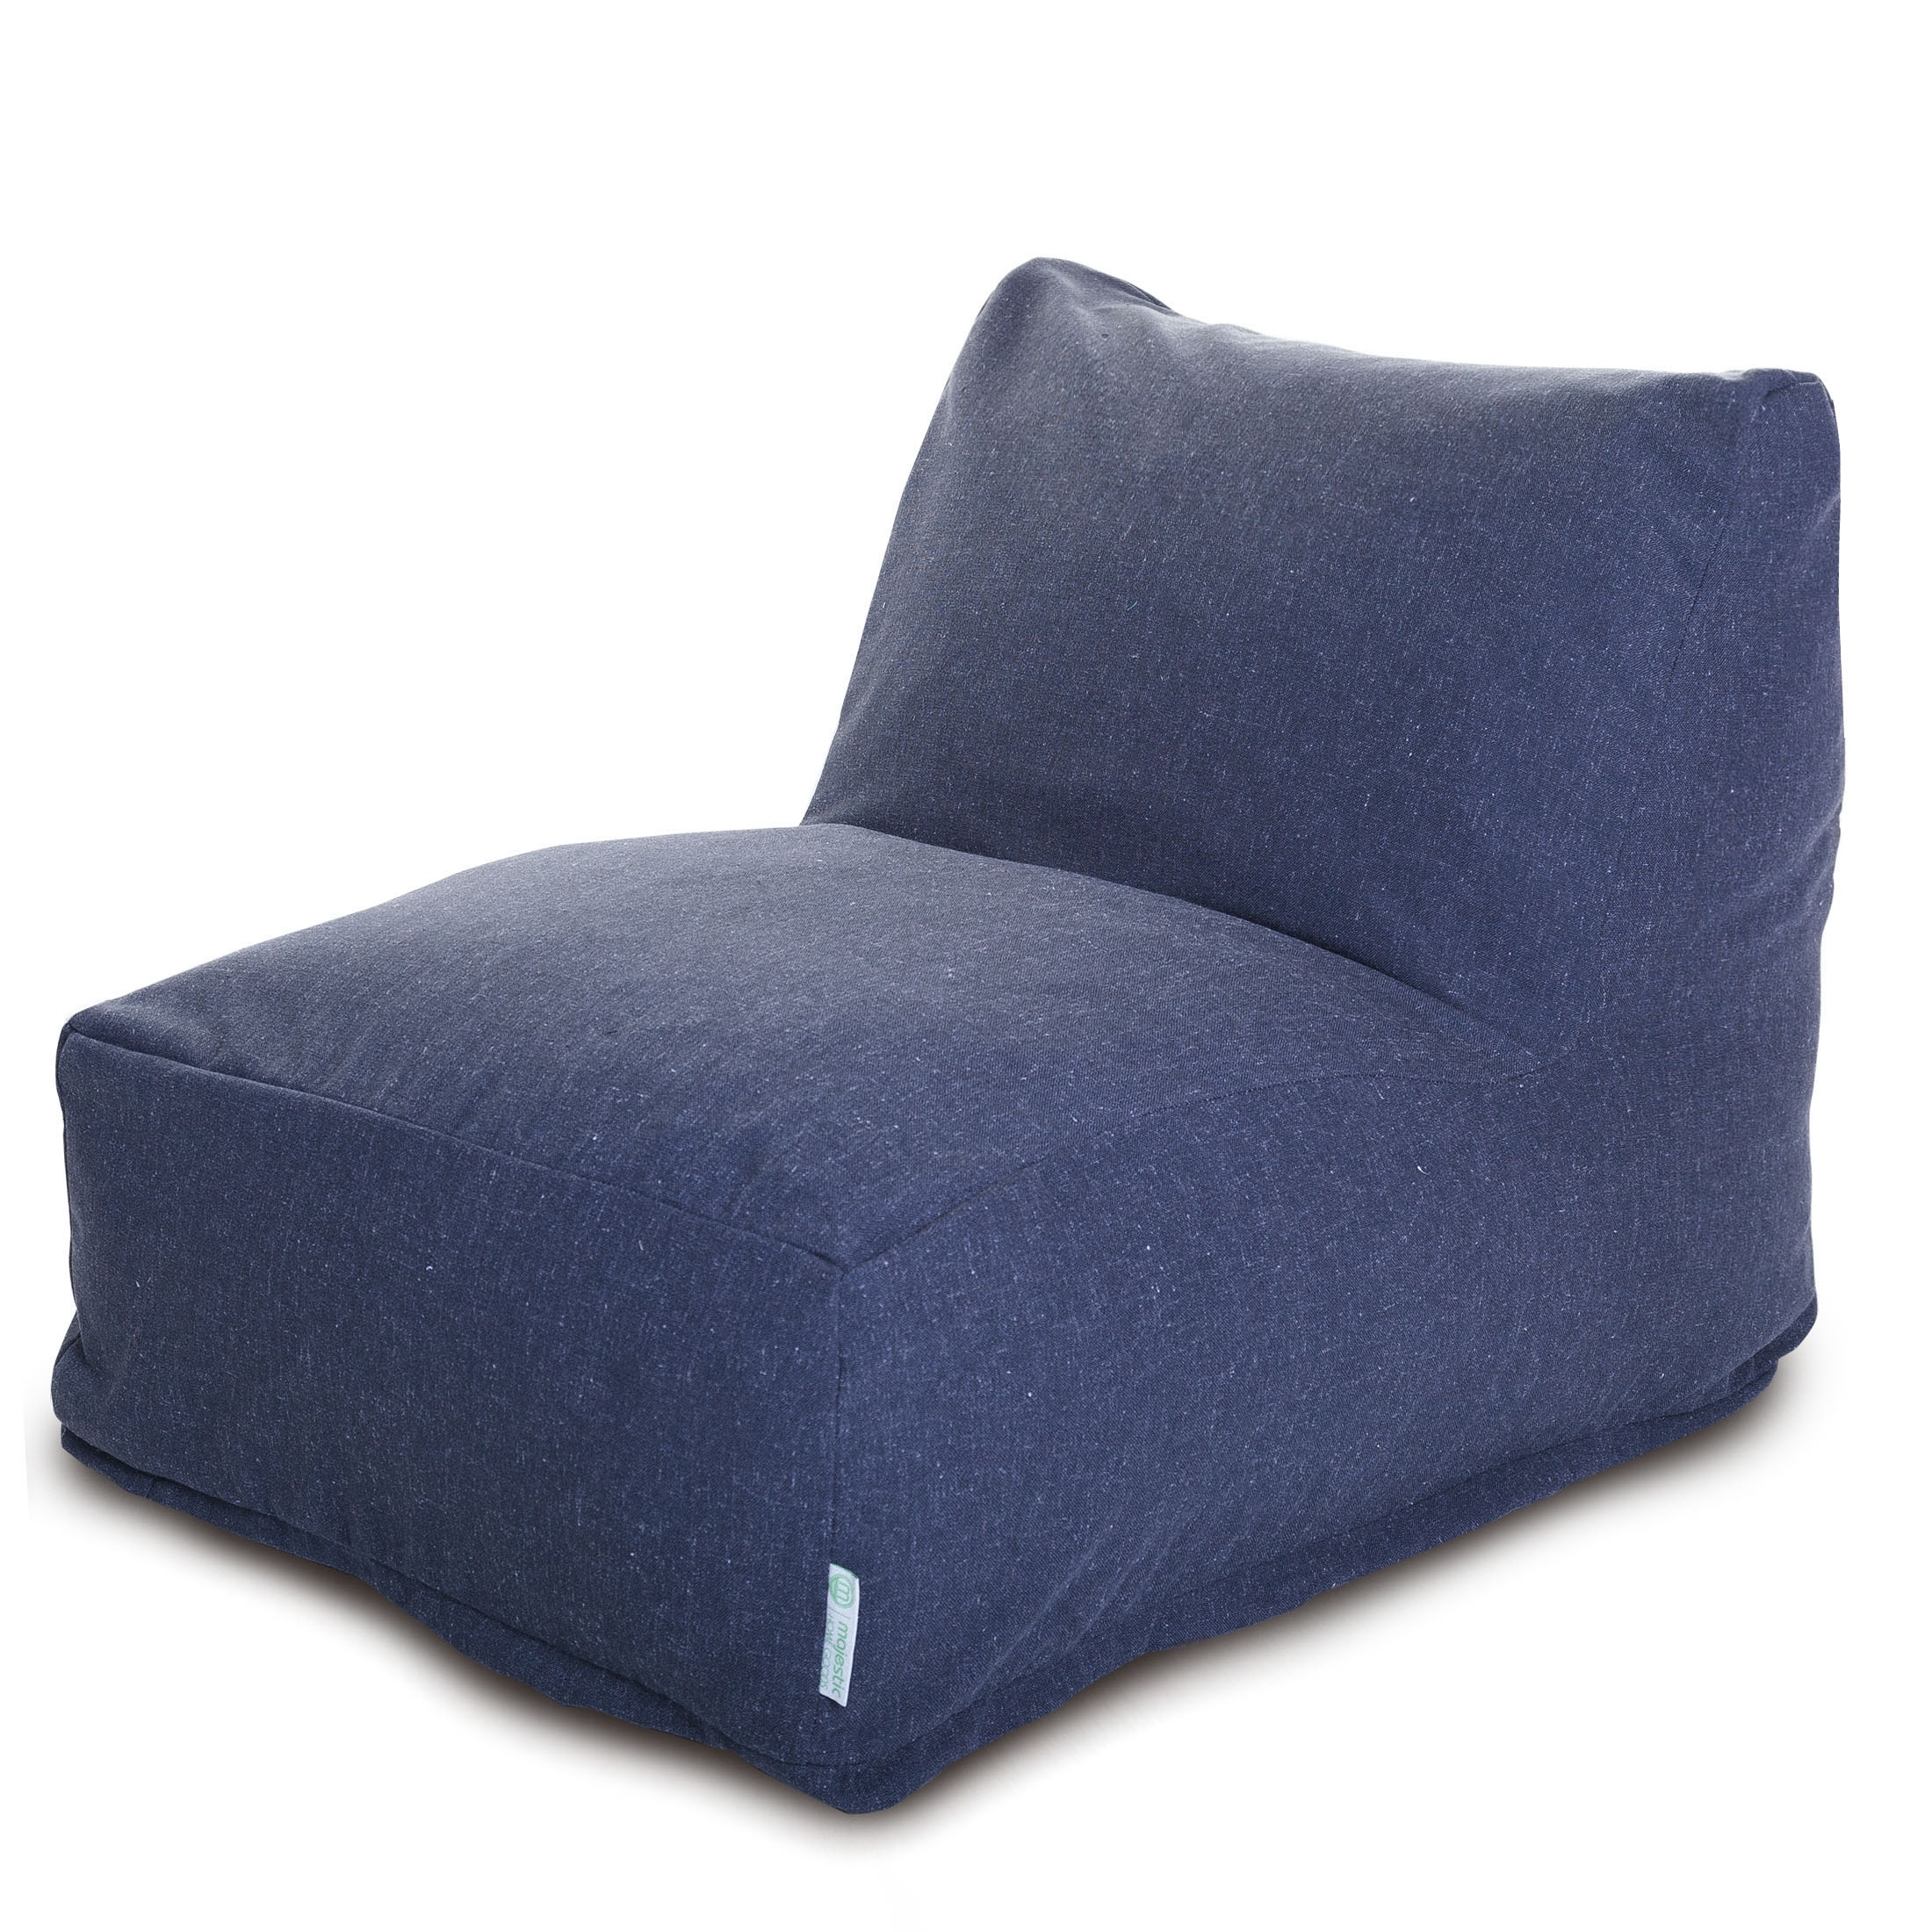 Lounge Chairs Sofa Chairs Patio Furniture Majestic Home Goods In Bean Bag Sofas And Chairs (Image 11 of 15)